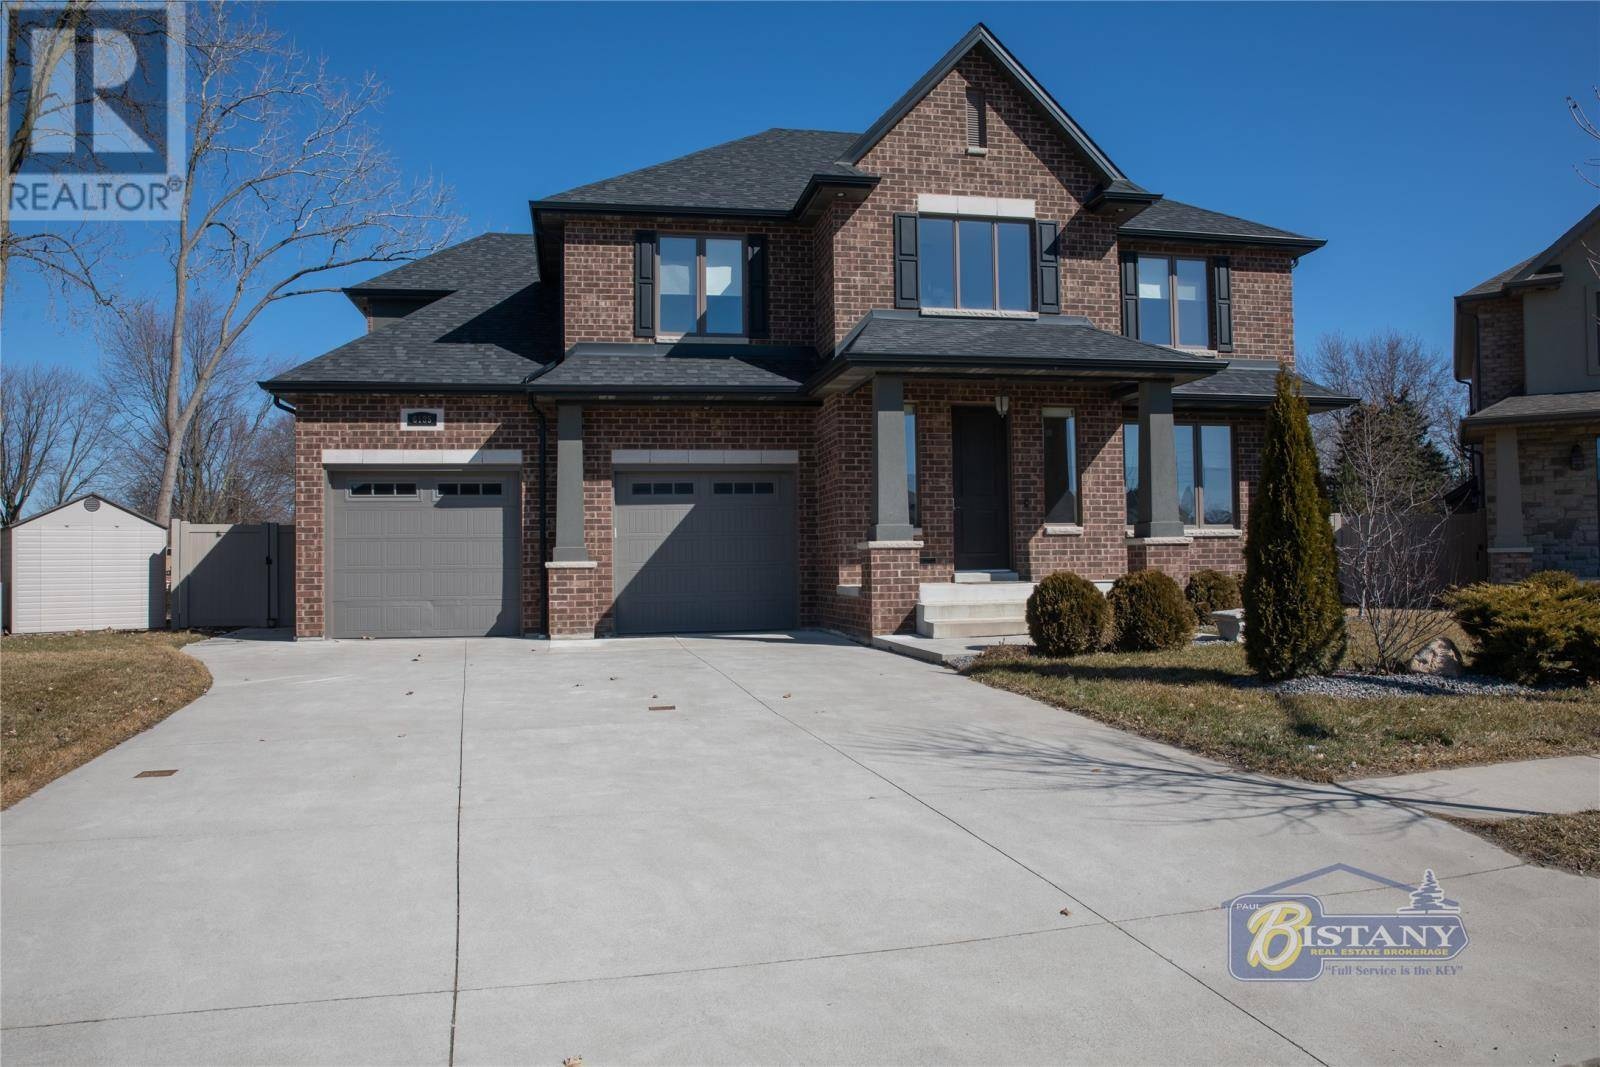 House for sale at 6185 Silver Maple  Lasalle Ontario - MLS: 20001838